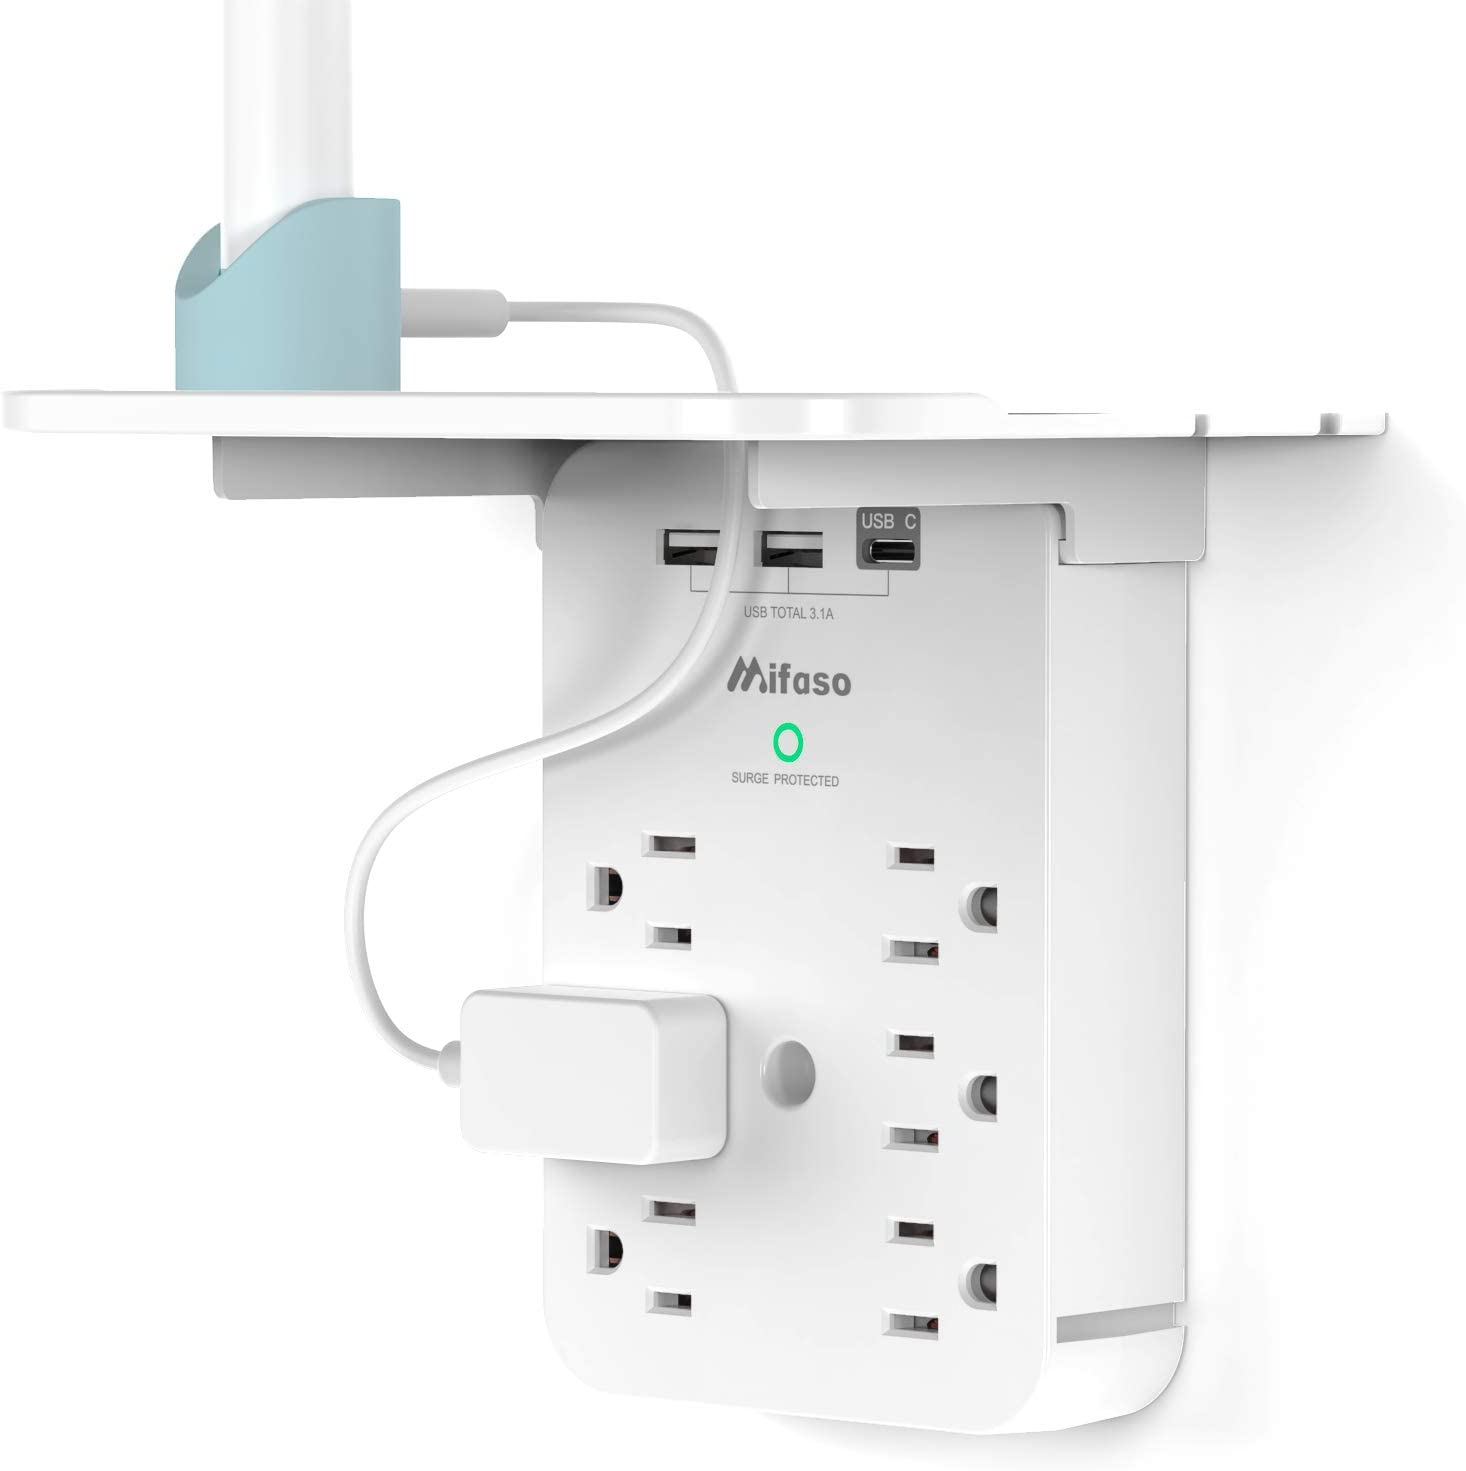 Wall Outlet Extender - Surge Protector 6 AC Outlets Multi Plug Outlet with Shelf, 2 USB and USB C Charging Ports Wall Plug Expander, USB Wall Charger Outlet Splitter for Home Dorm